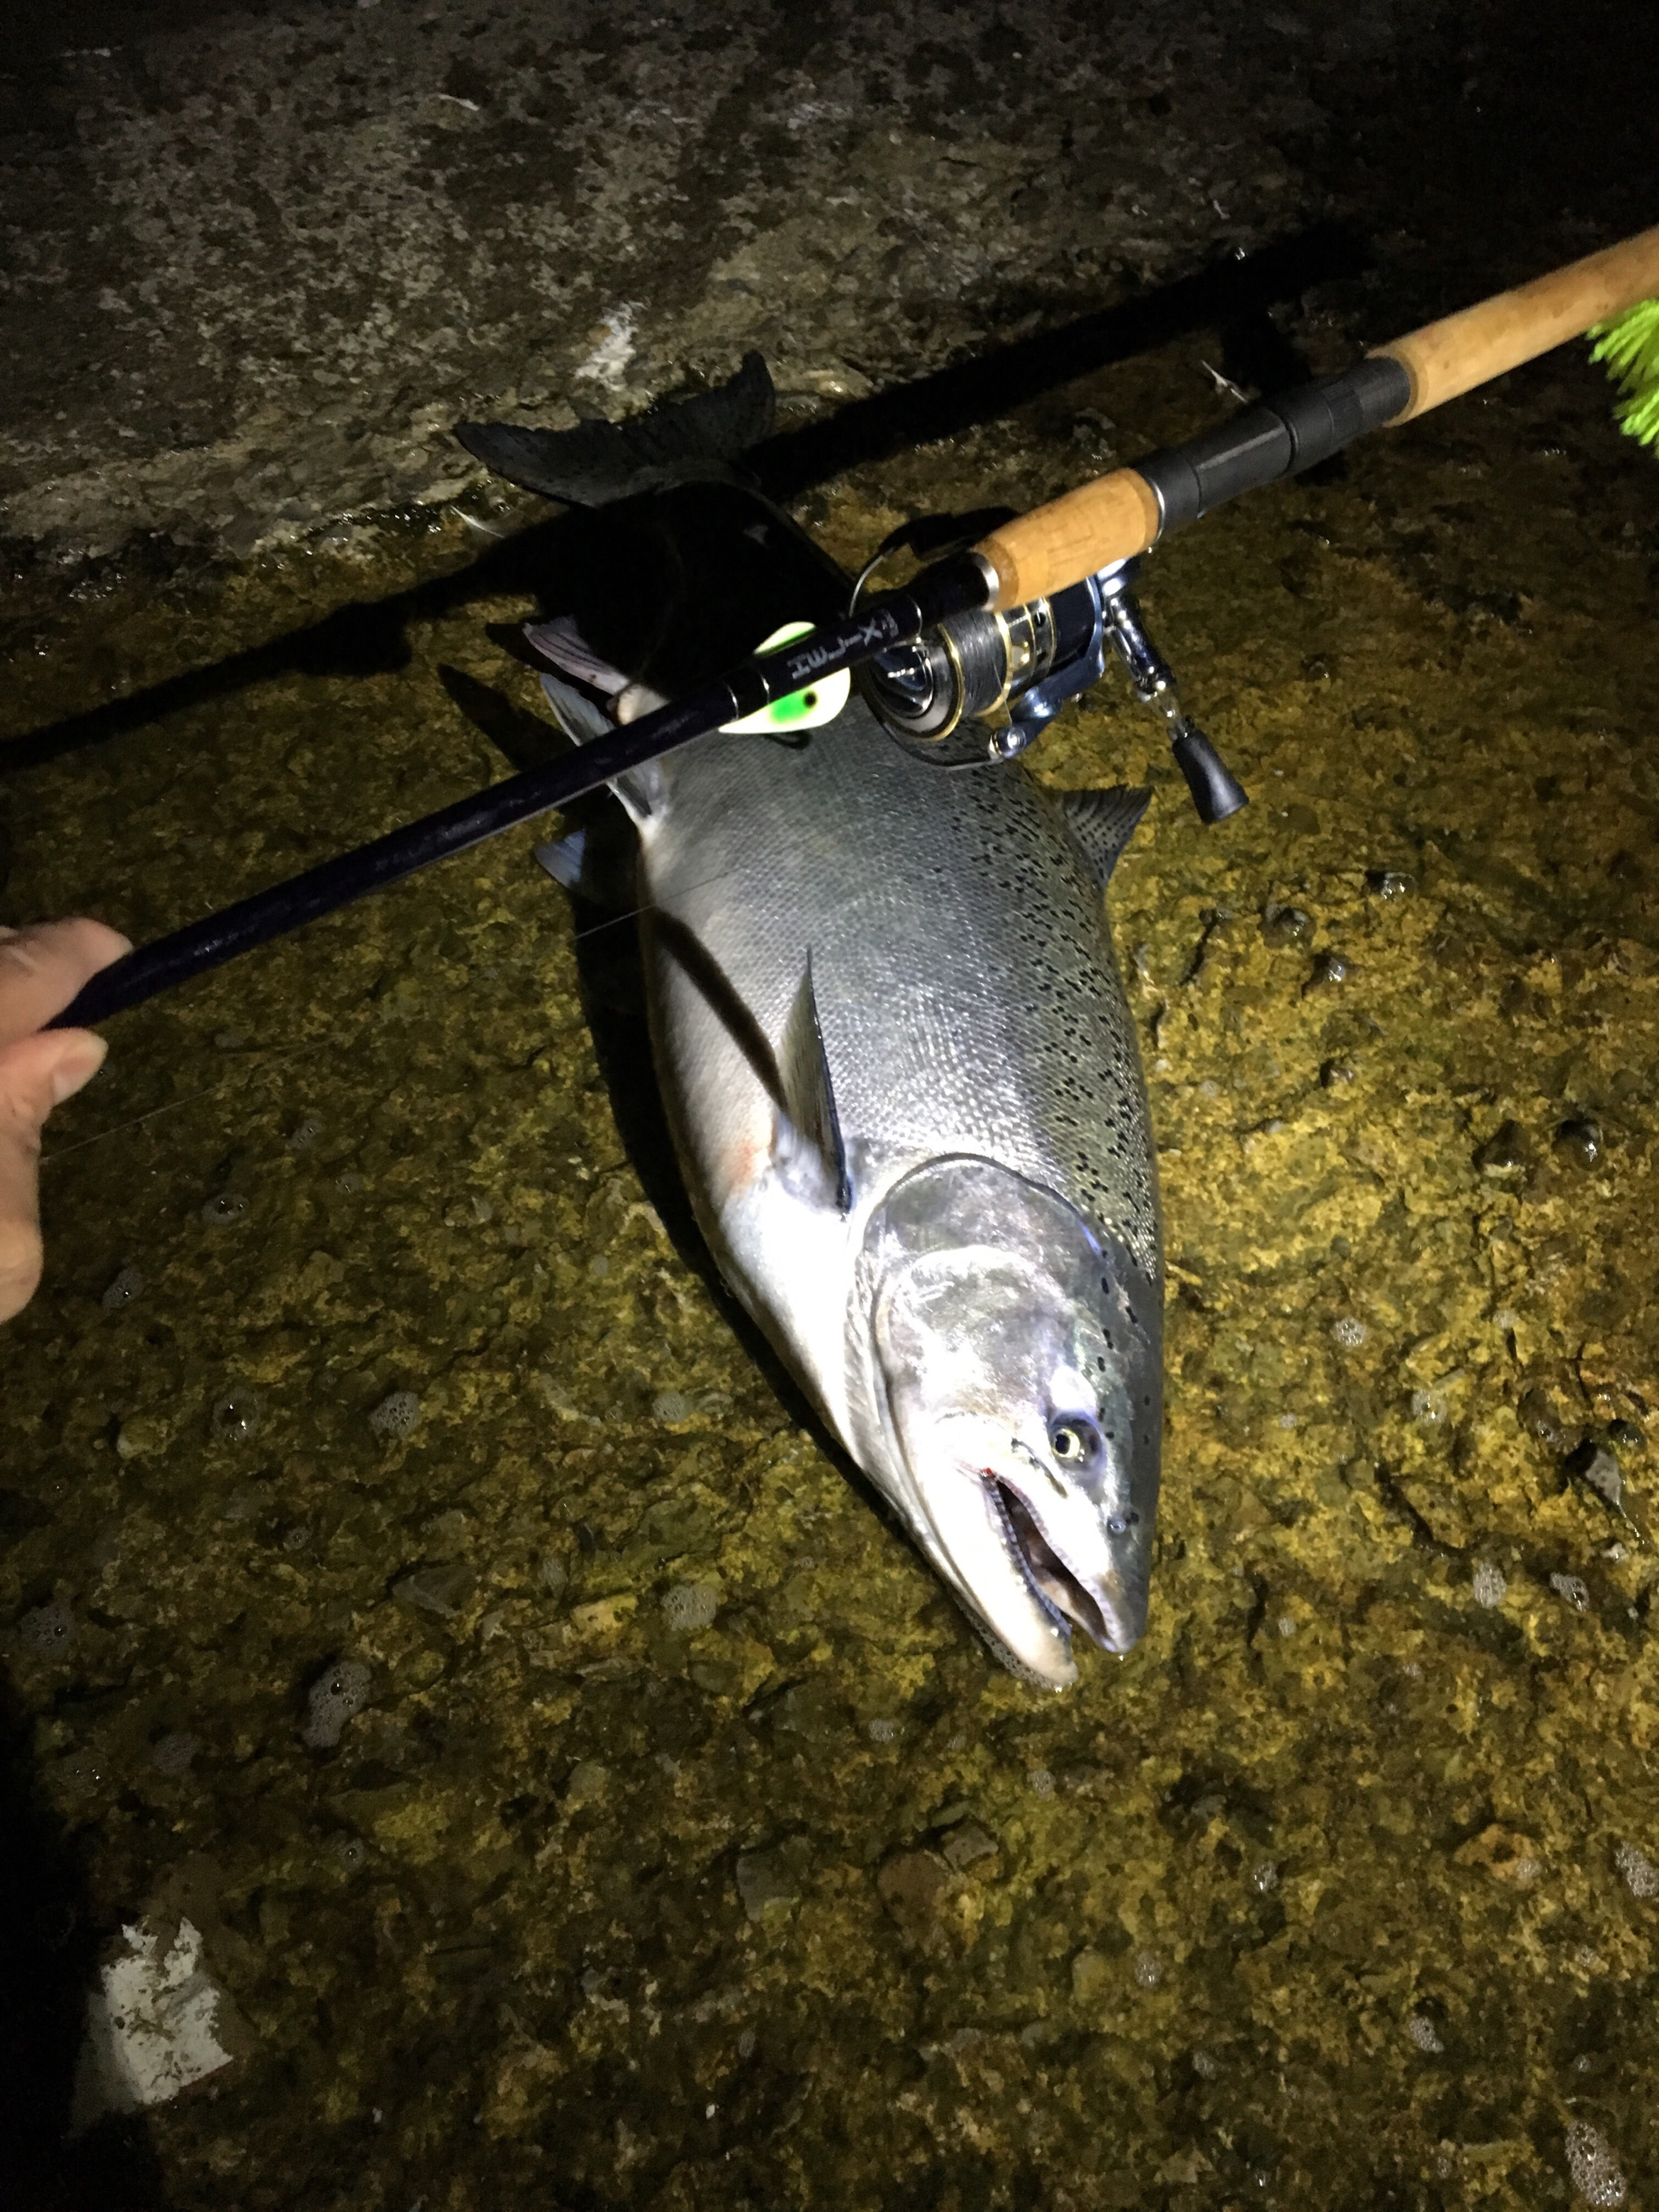 Share your best catch es for the 2017 fishing season for Pa fishing seasons and limits 2017